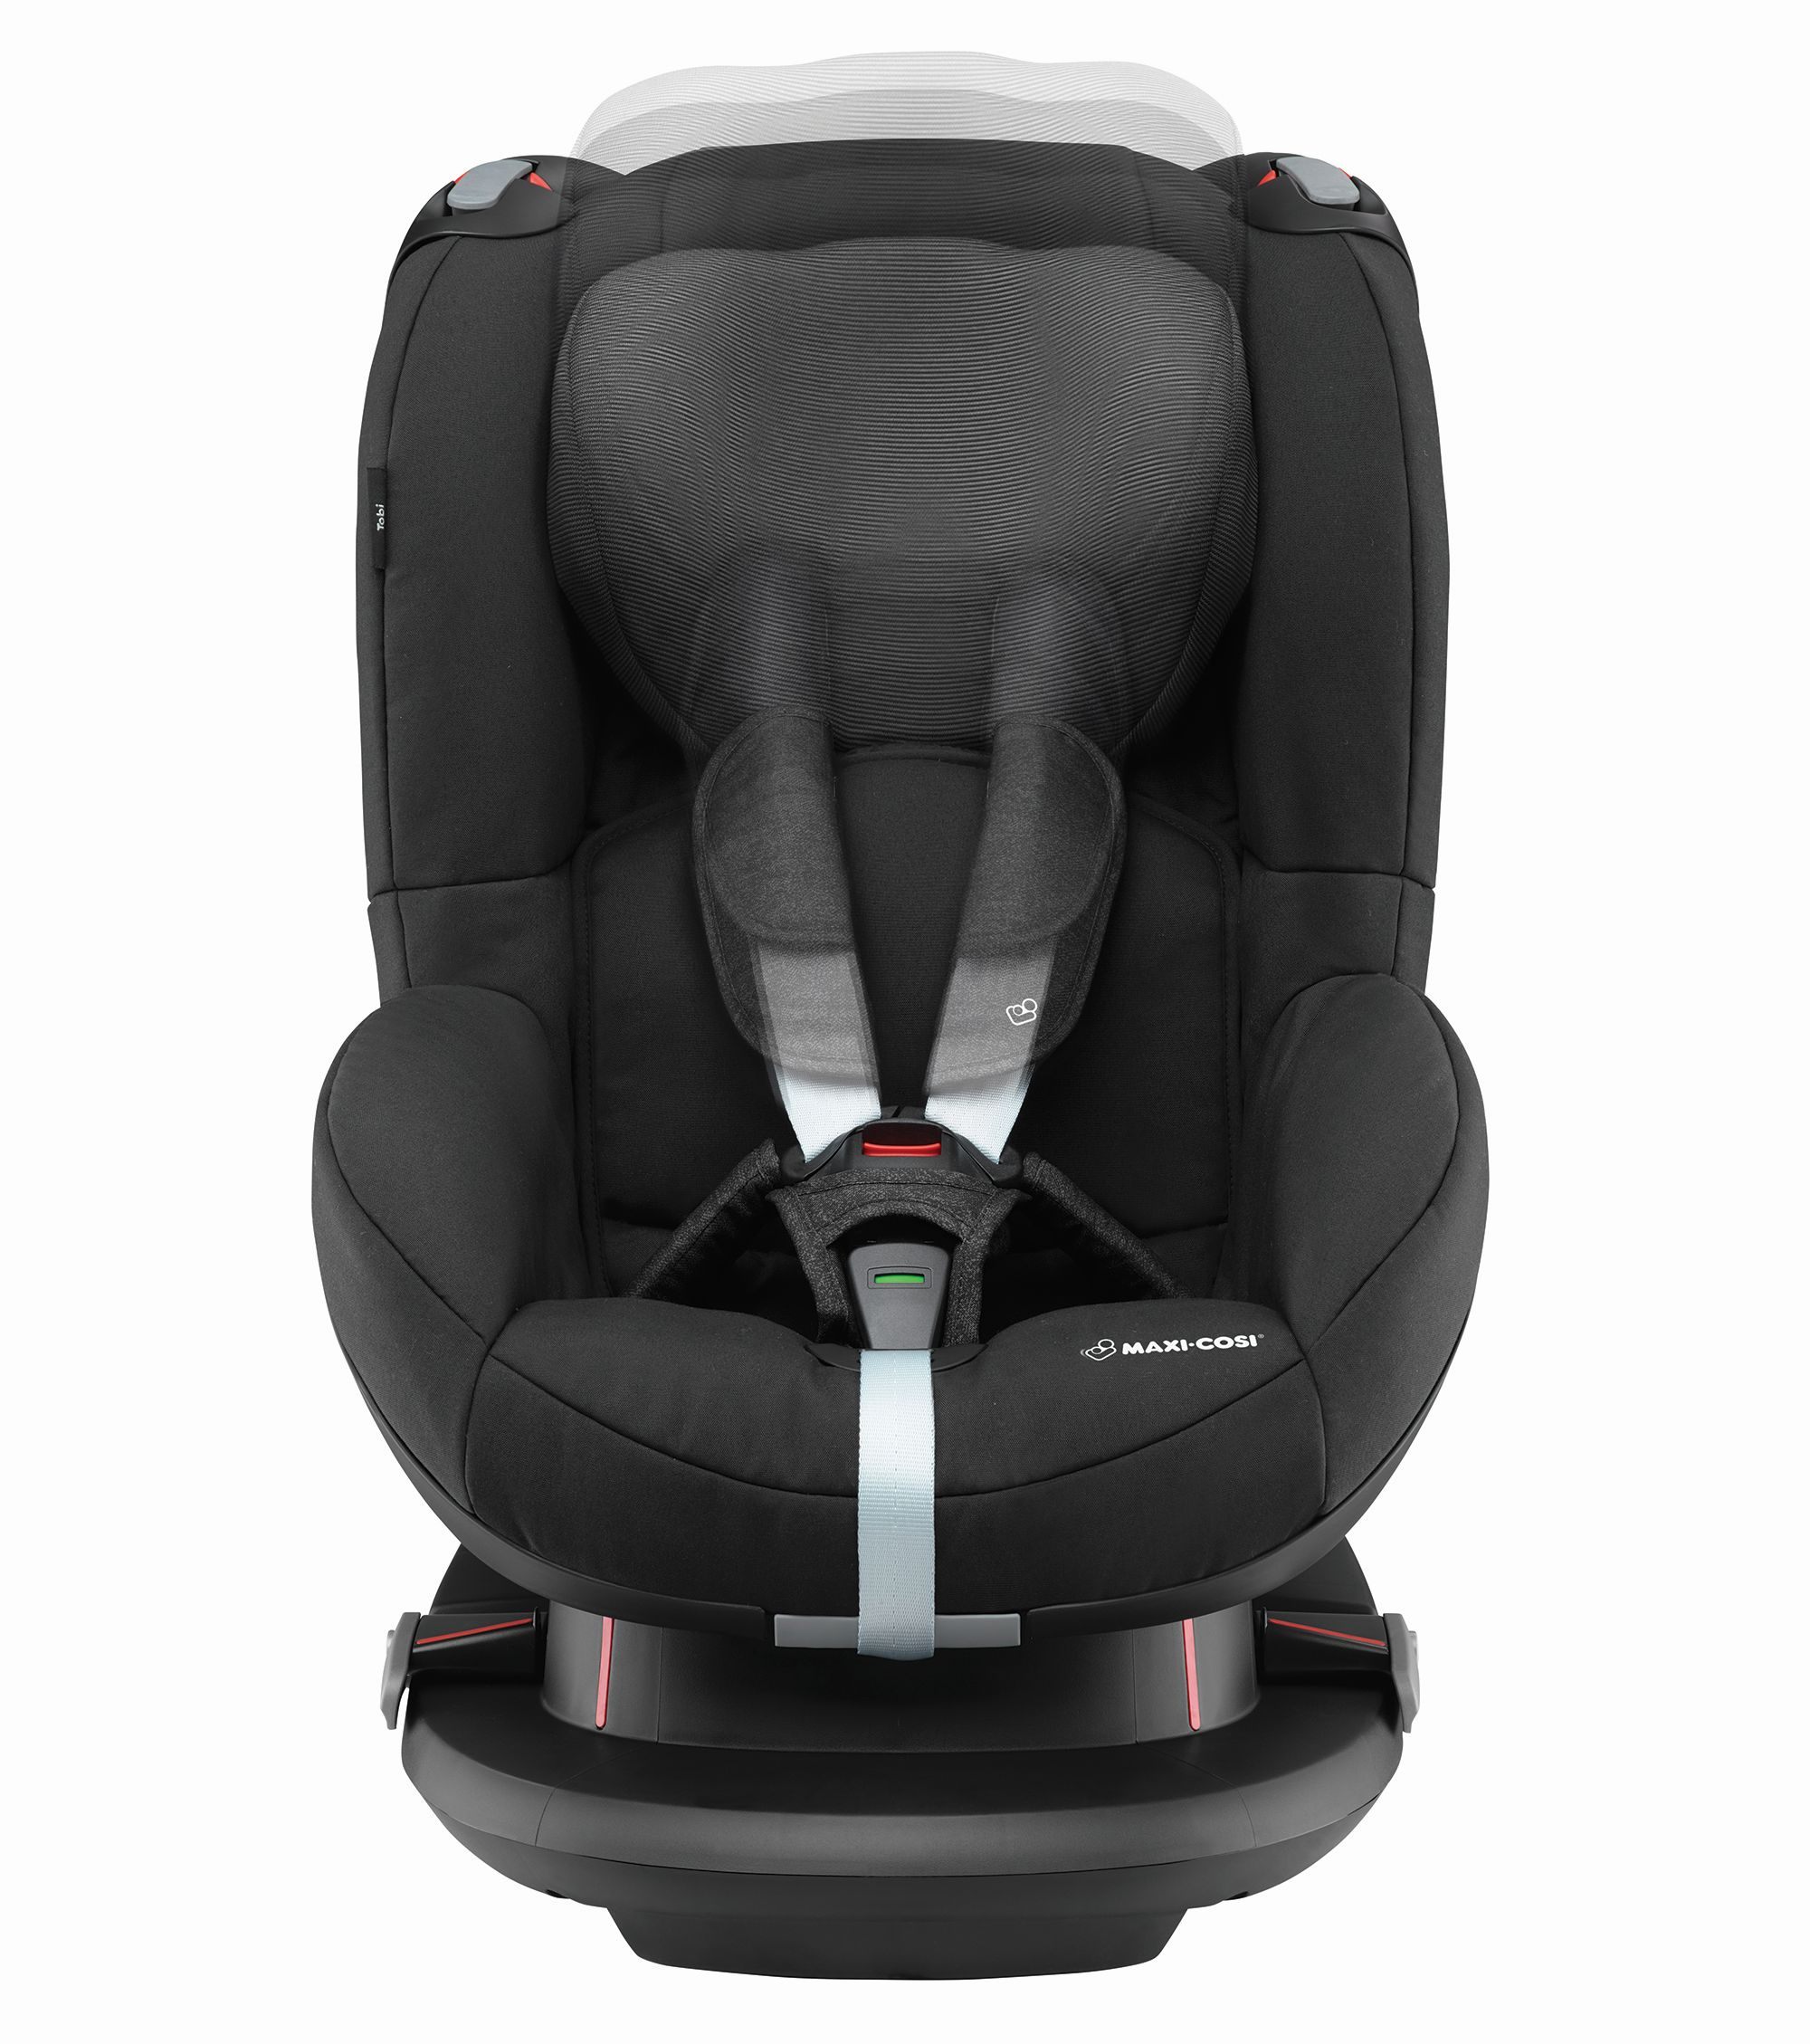 maxi cosi child car seat tobi 2018 nomad black buy at. Black Bedroom Furniture Sets. Home Design Ideas